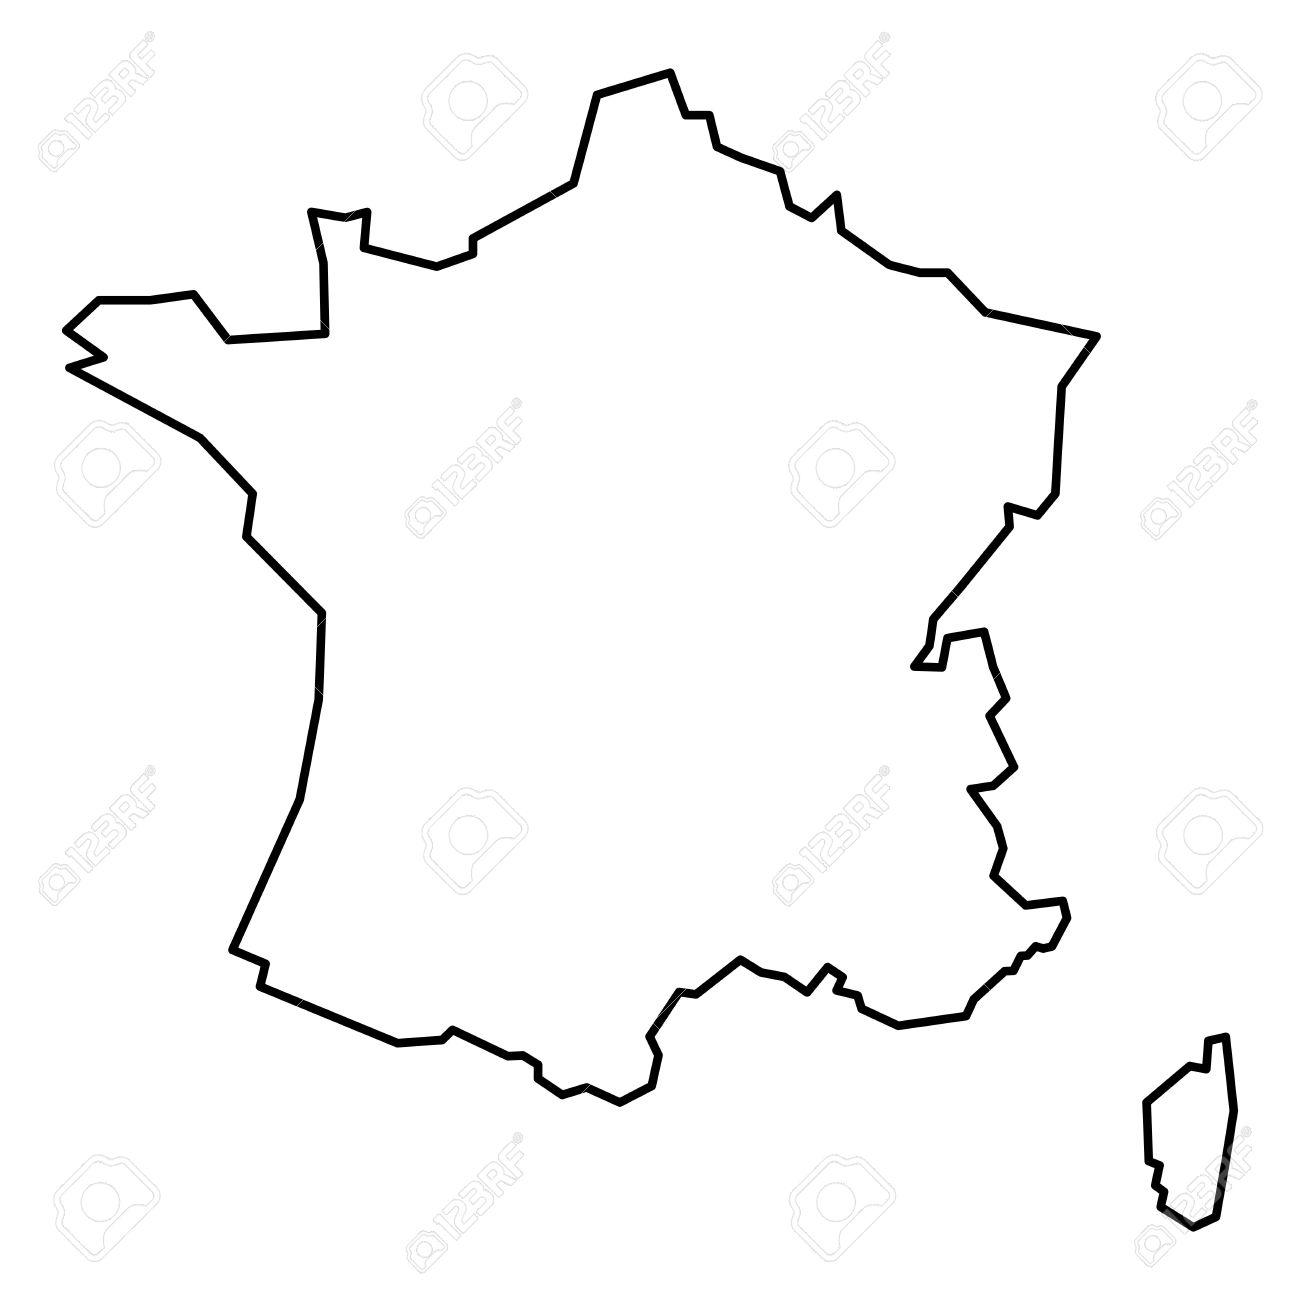 Simple Contour Map Of France Black Outline Map Isolated On White